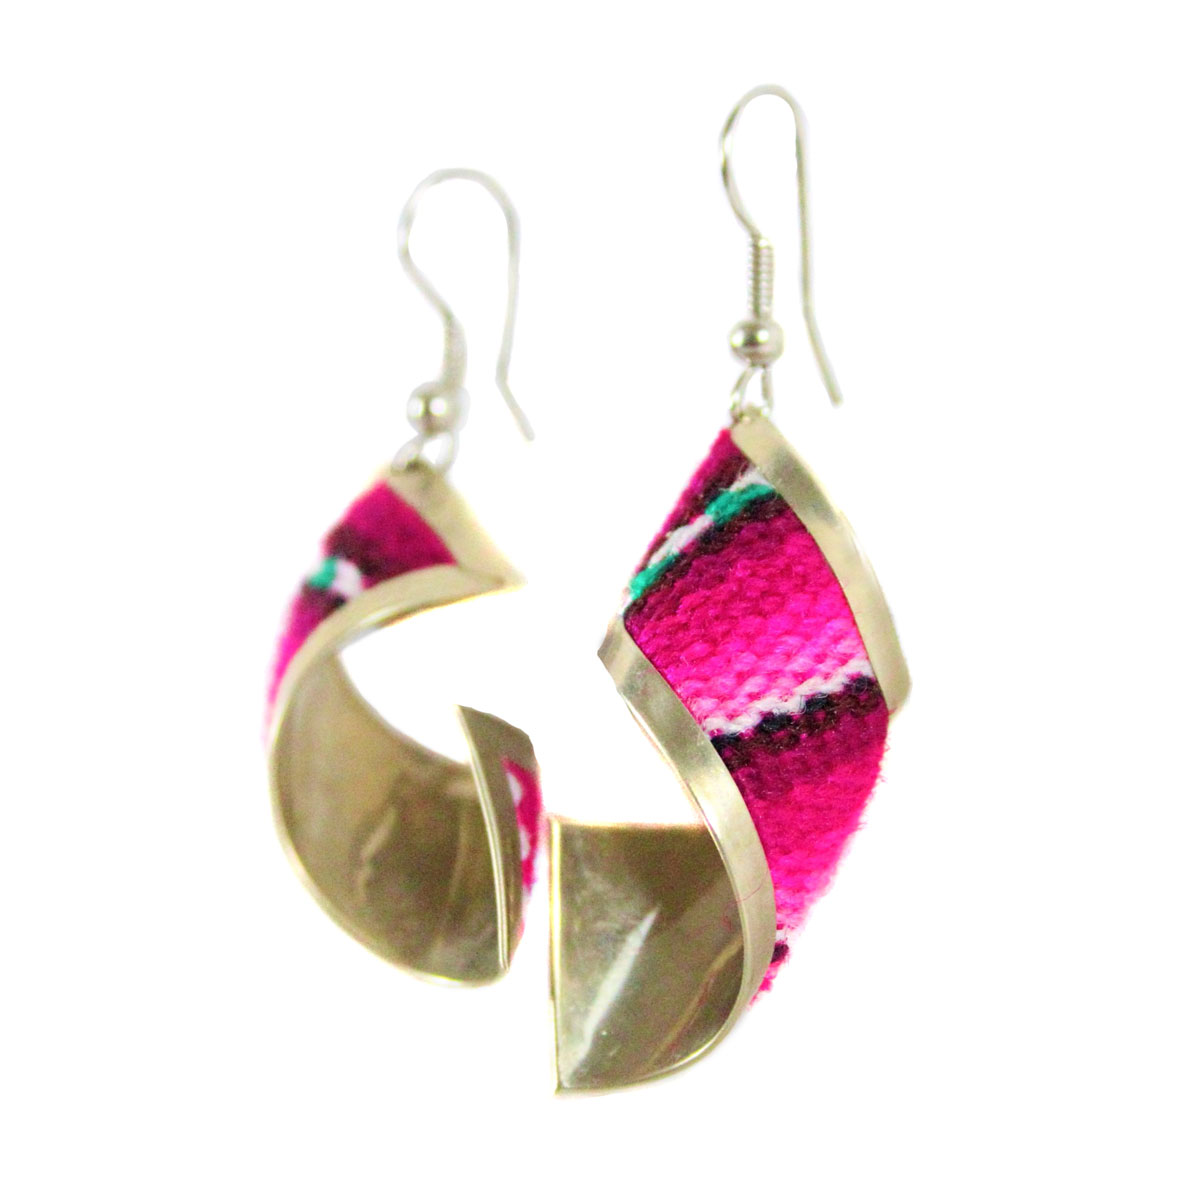 Inka-Products-Boucles d'Oreilles Tissu Traditionnel Péruvien-Rectangle Spiral Nuances de Fuchsia-2